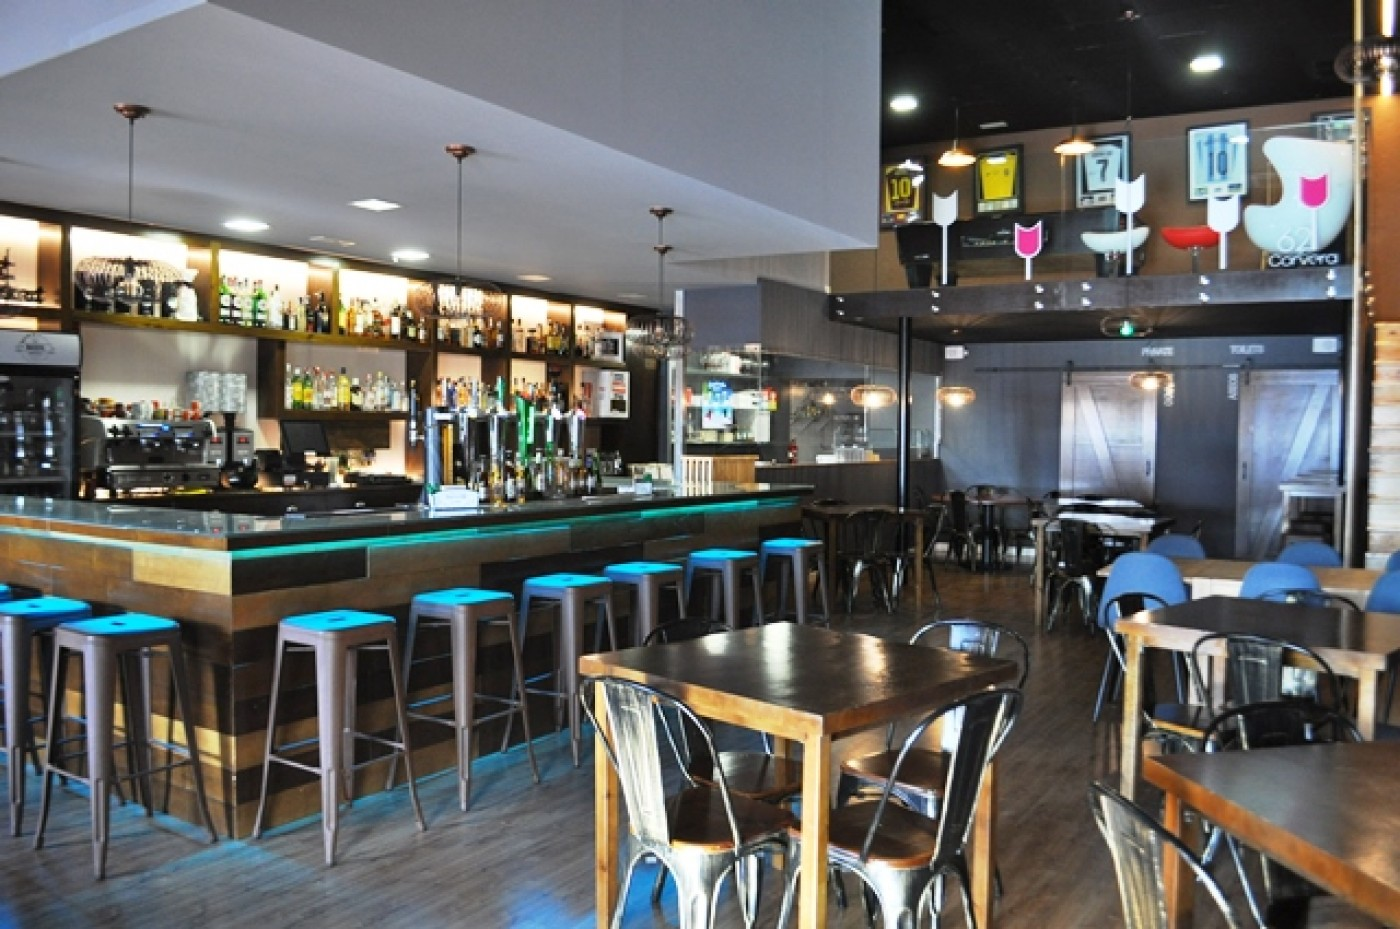 62 Corvera: eat, drink and relax with live entertainment and sports coverage at this family bar in Corvera